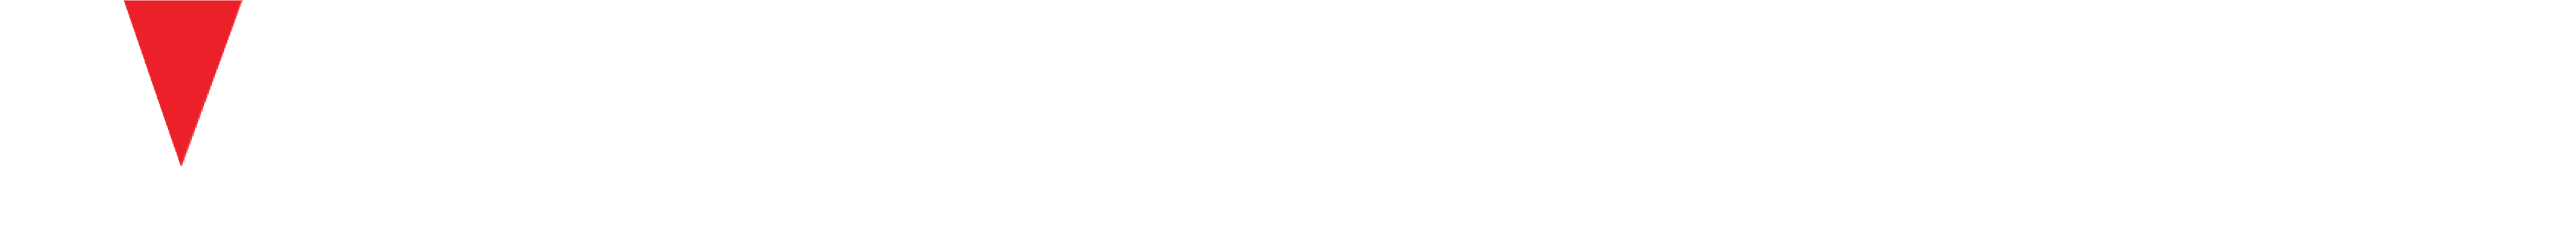 Metadynamics-logo